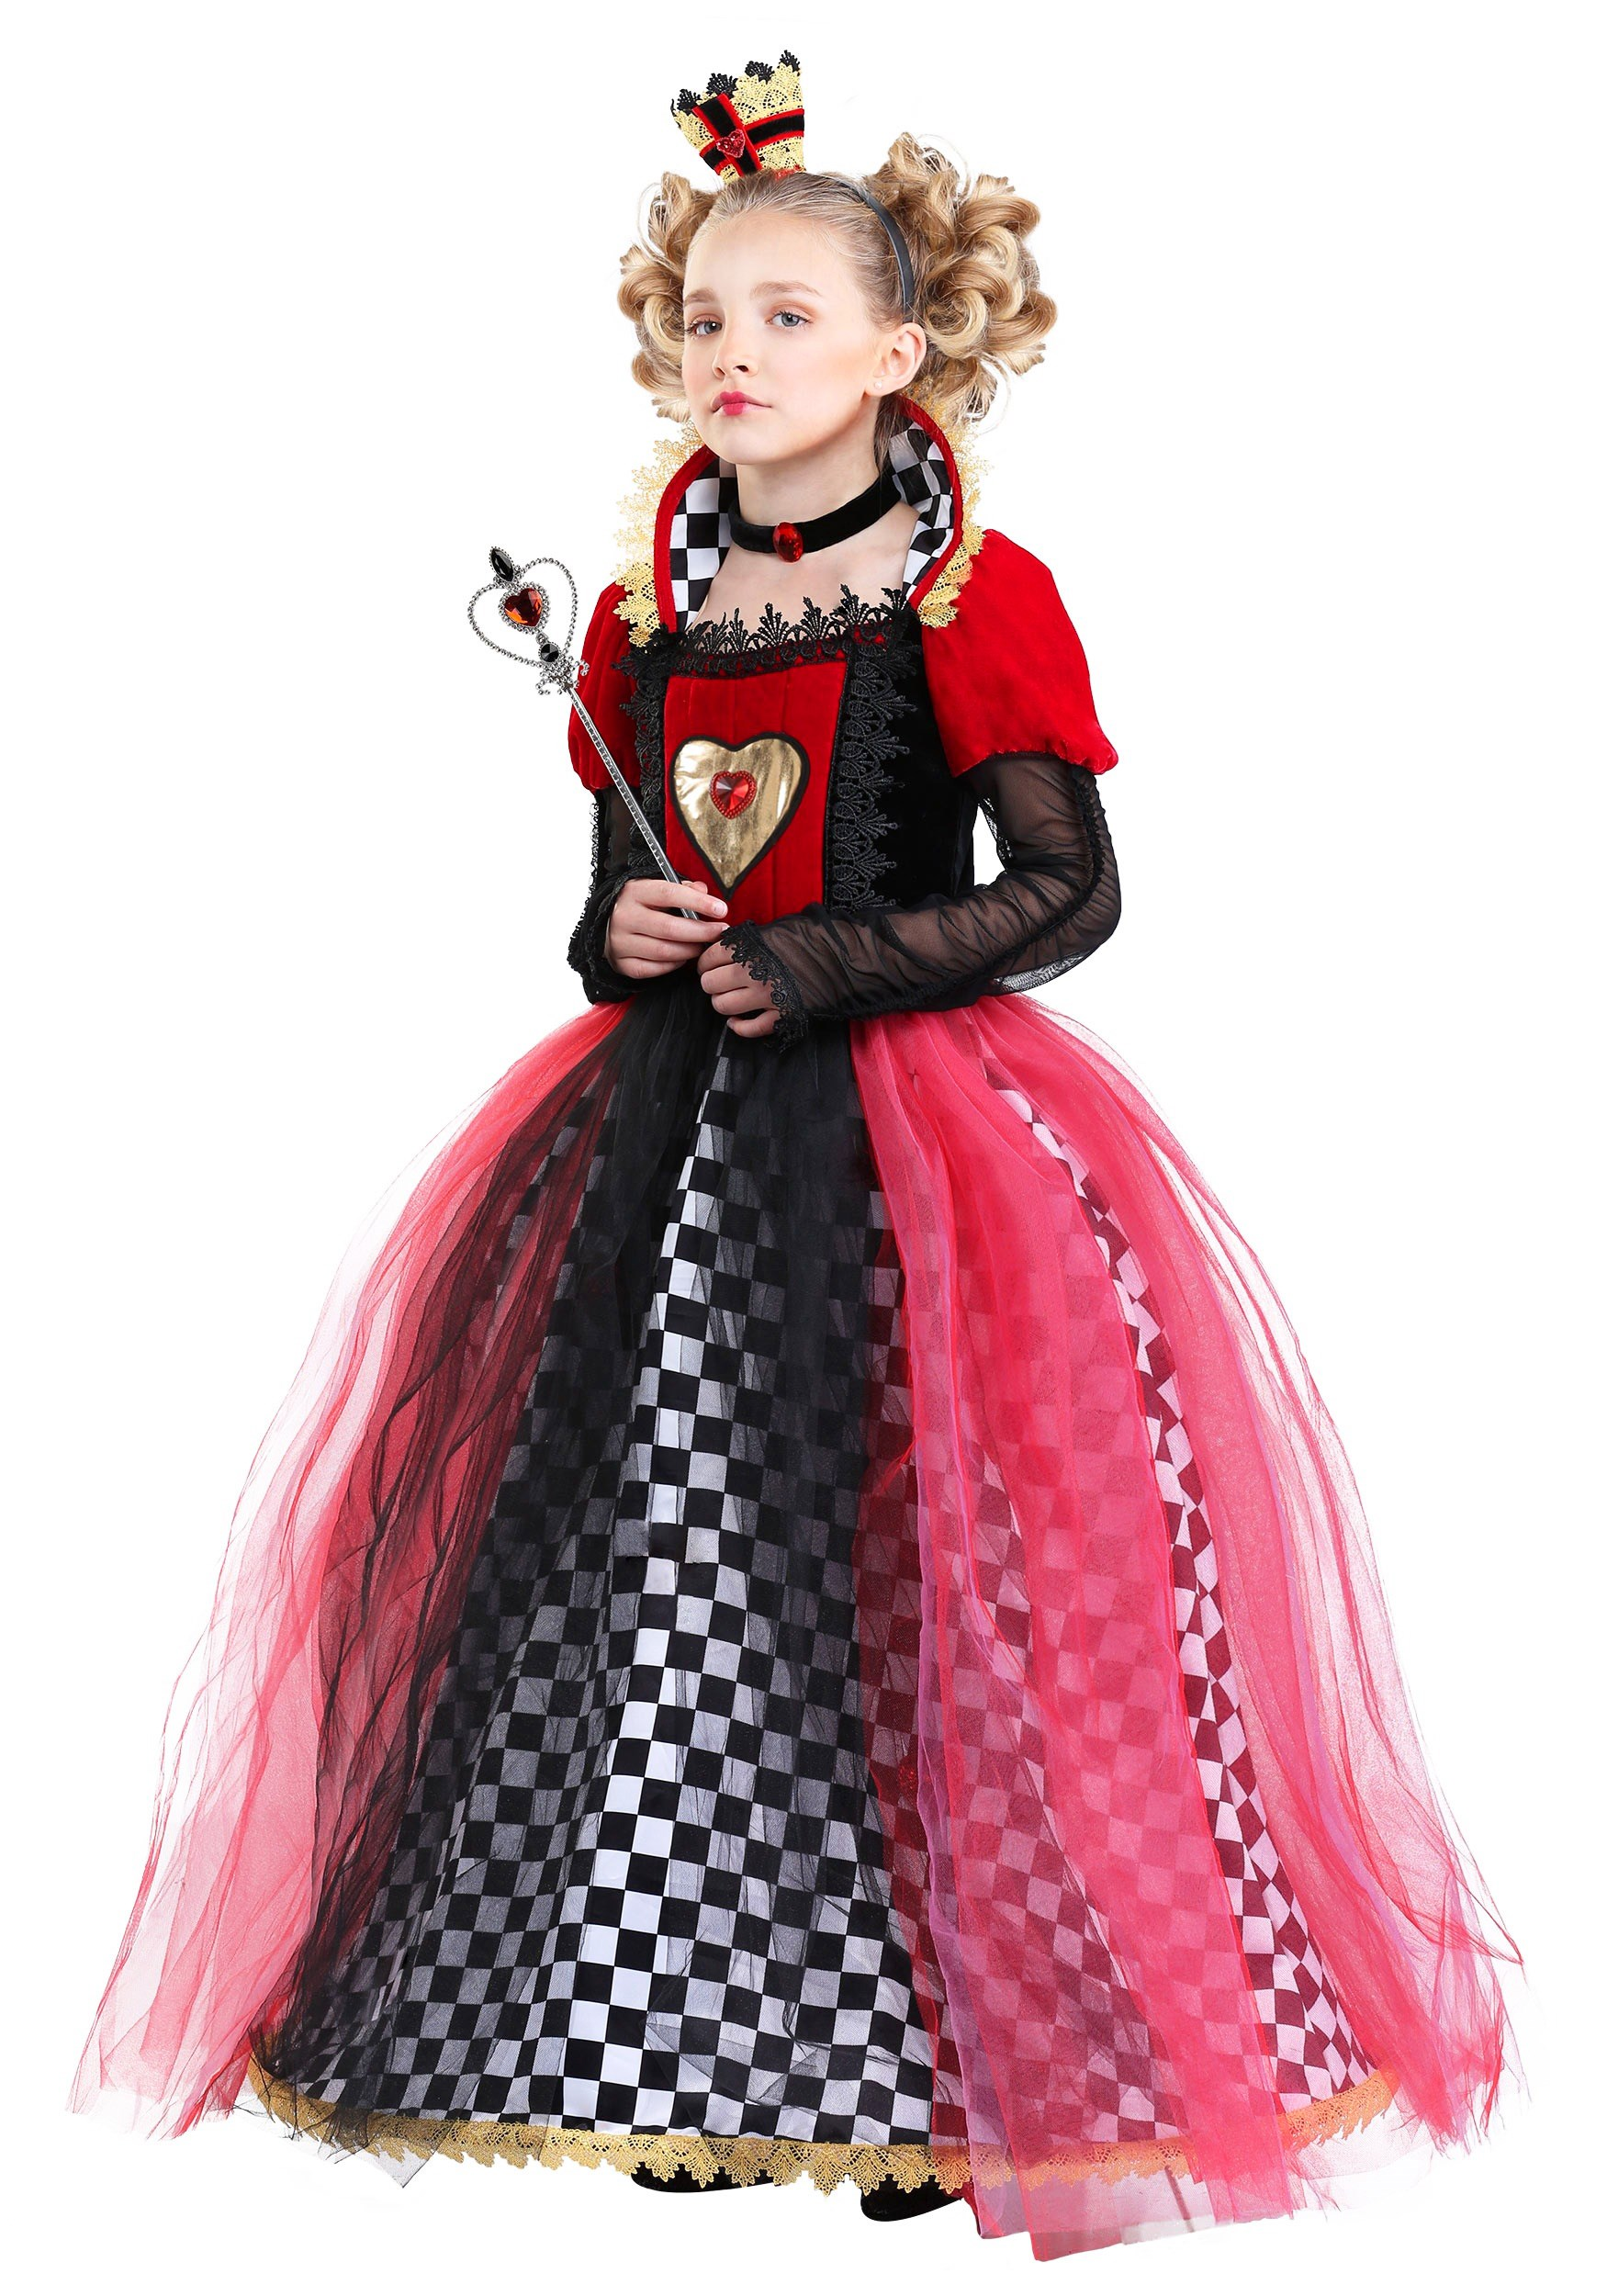 Ravishing Queen of Hearts Costume for Girl's